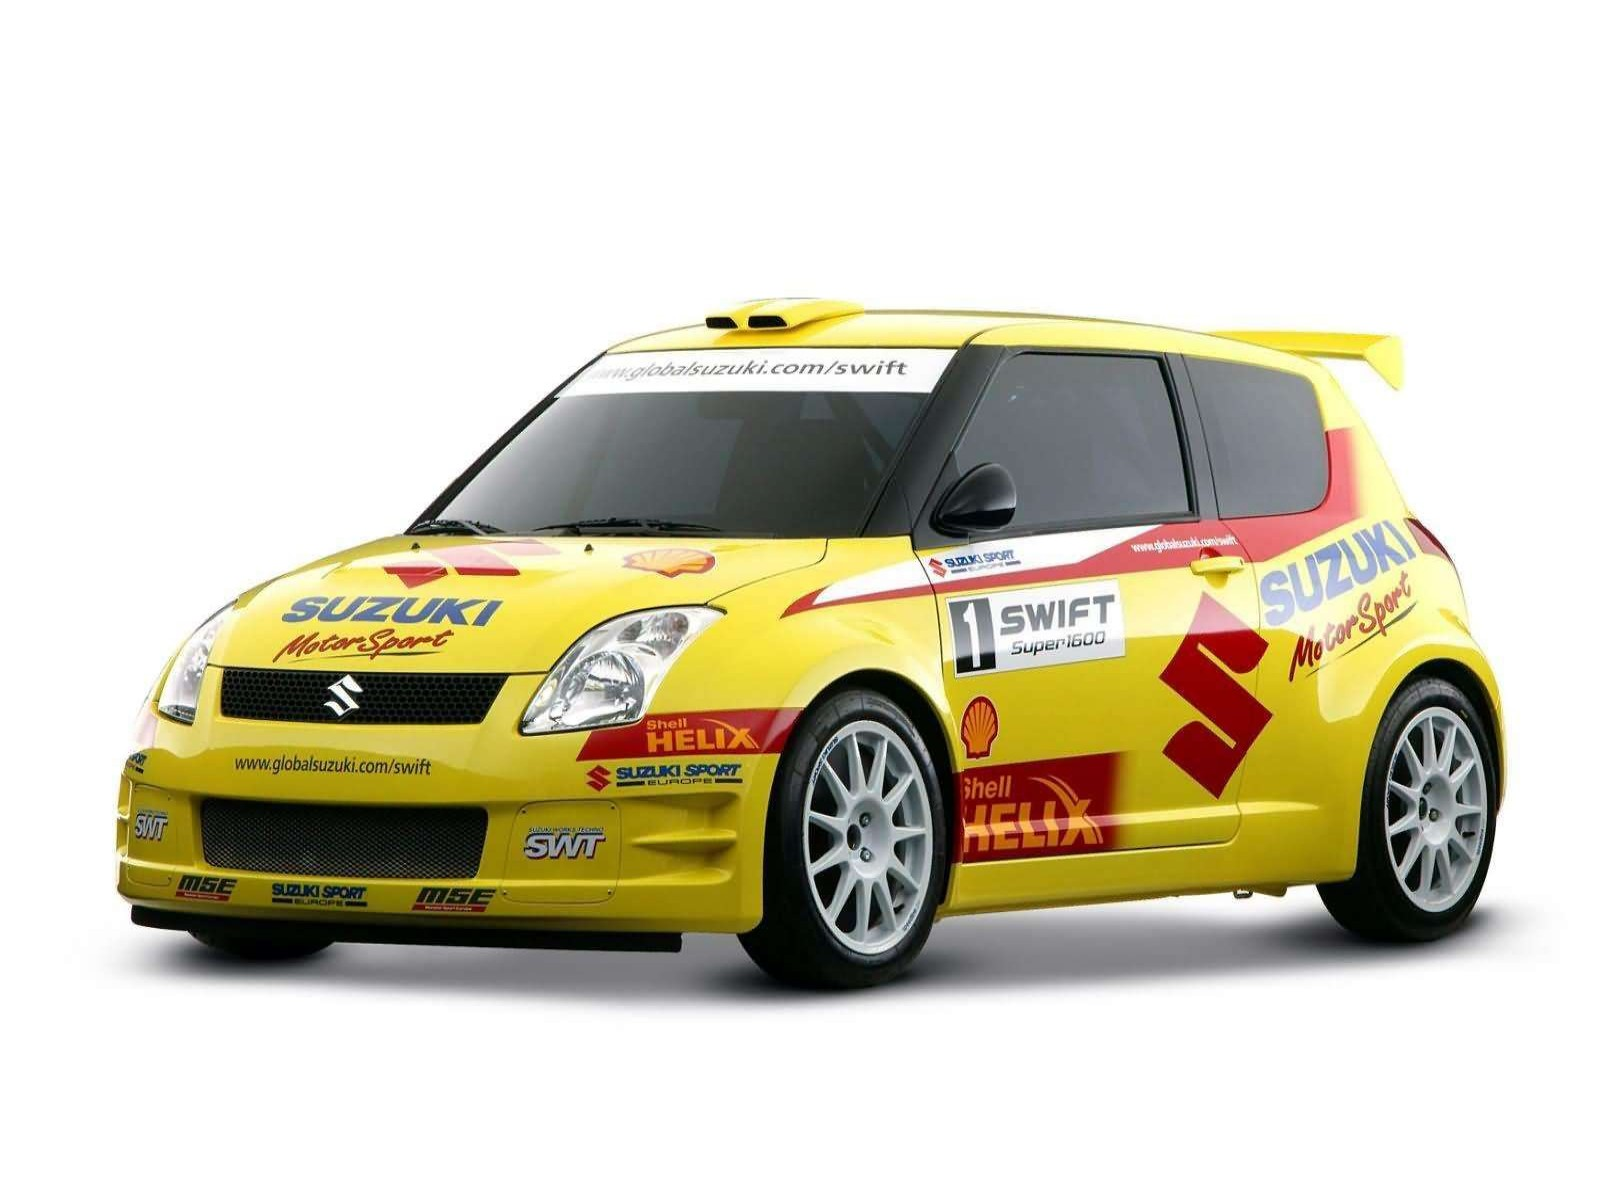 Suzuki Swift Rally Car 2005 on 1983 alfa romeo giulietta